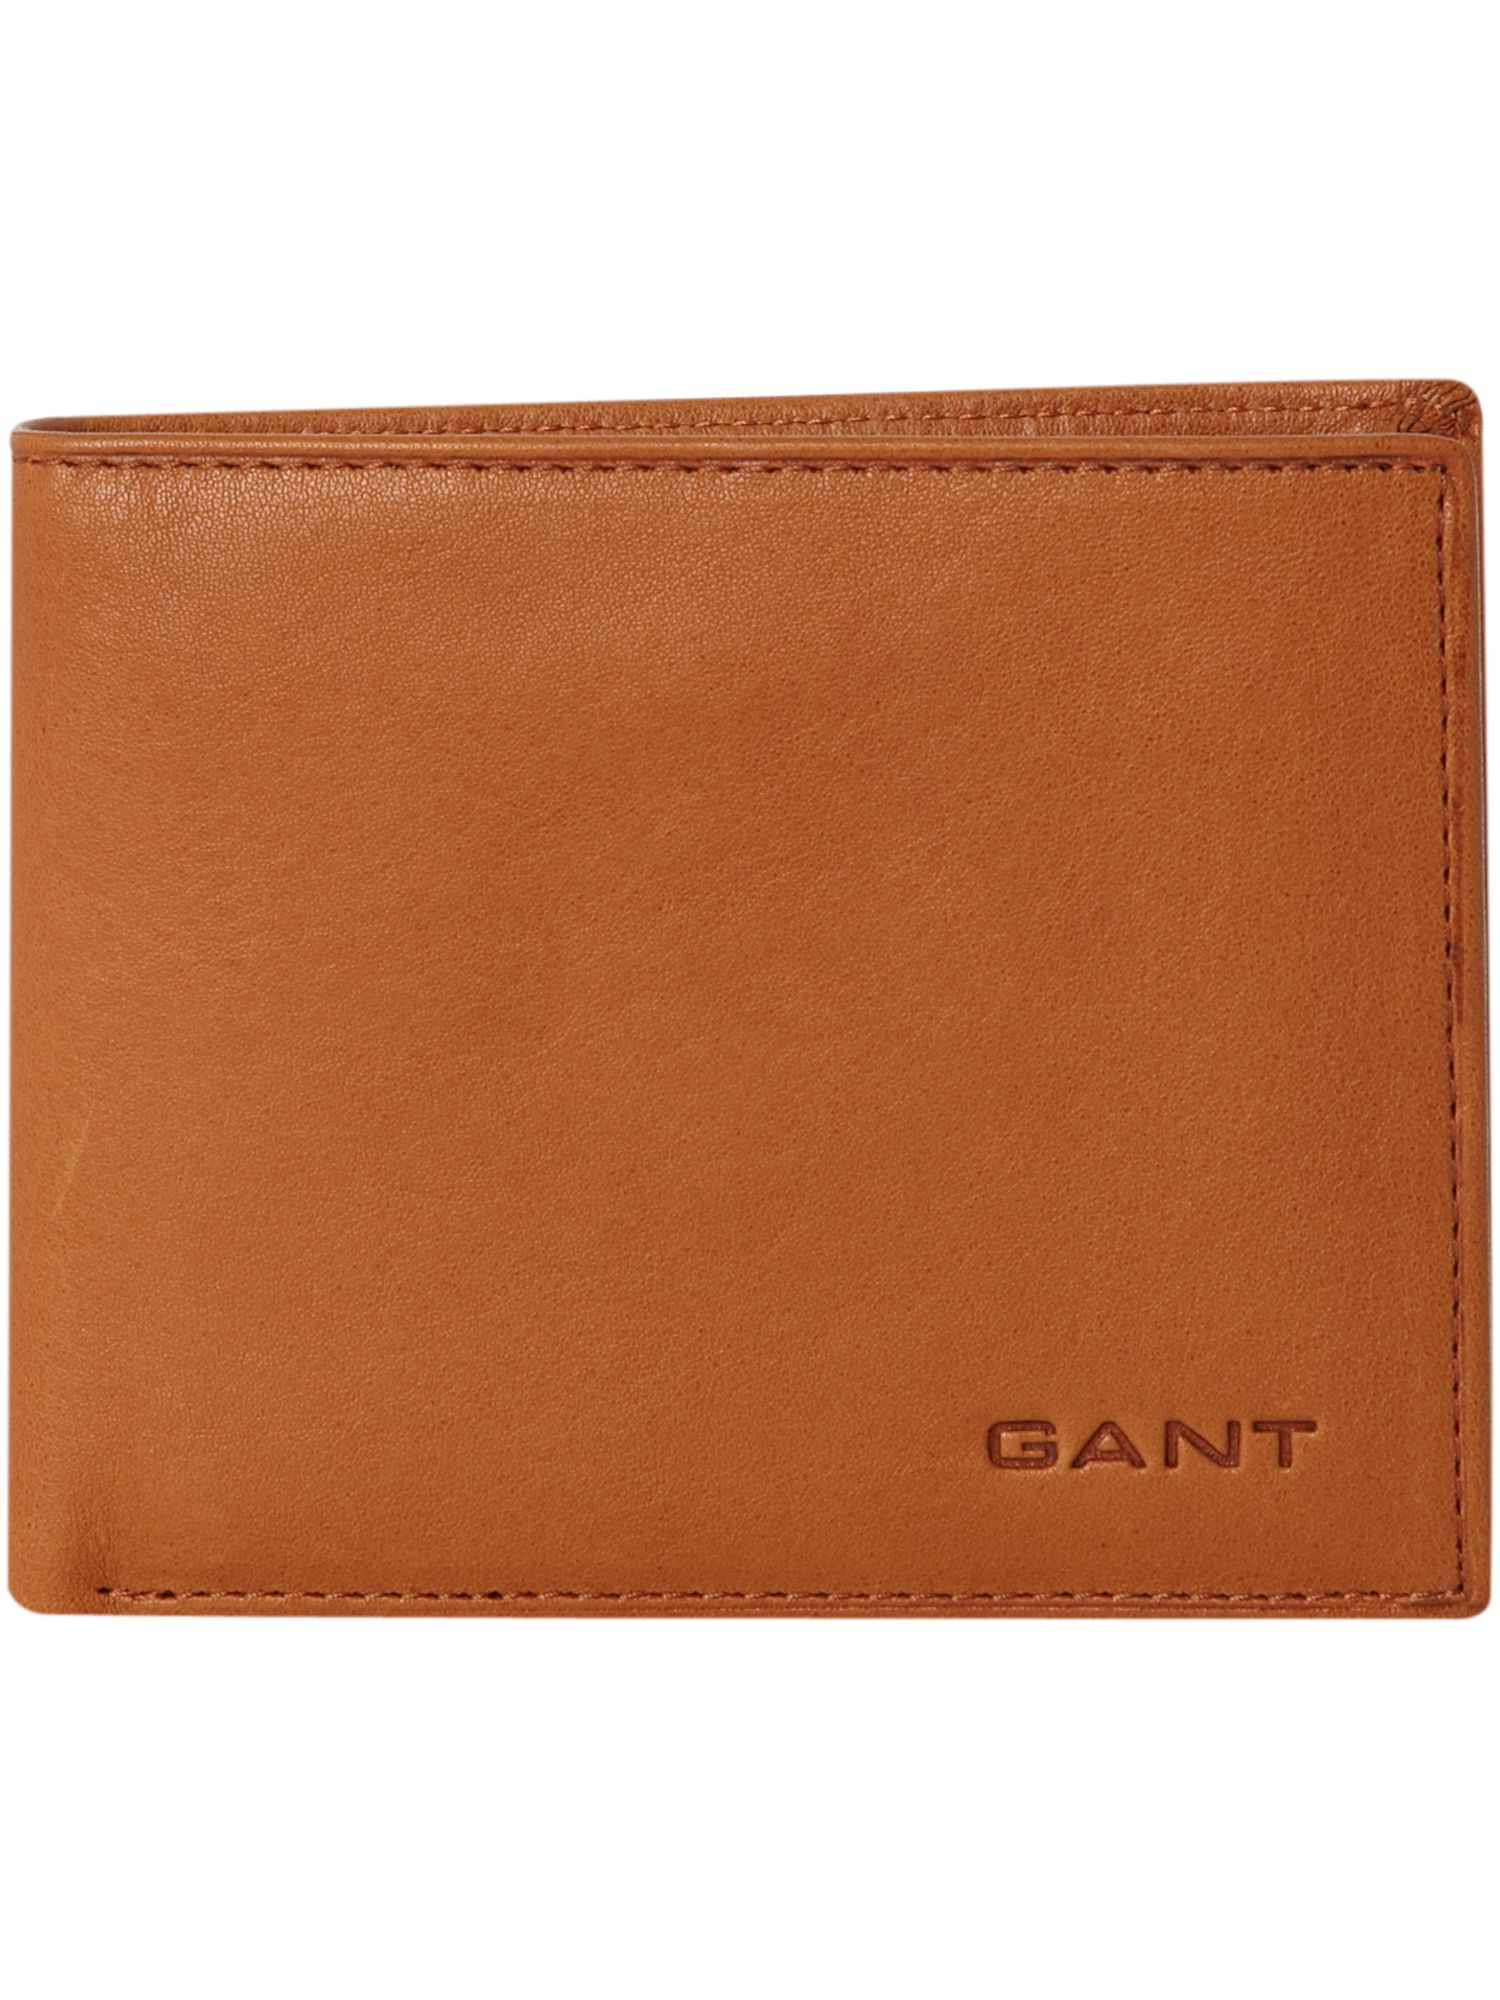 Gant Billfold wallet with coin pouch product image